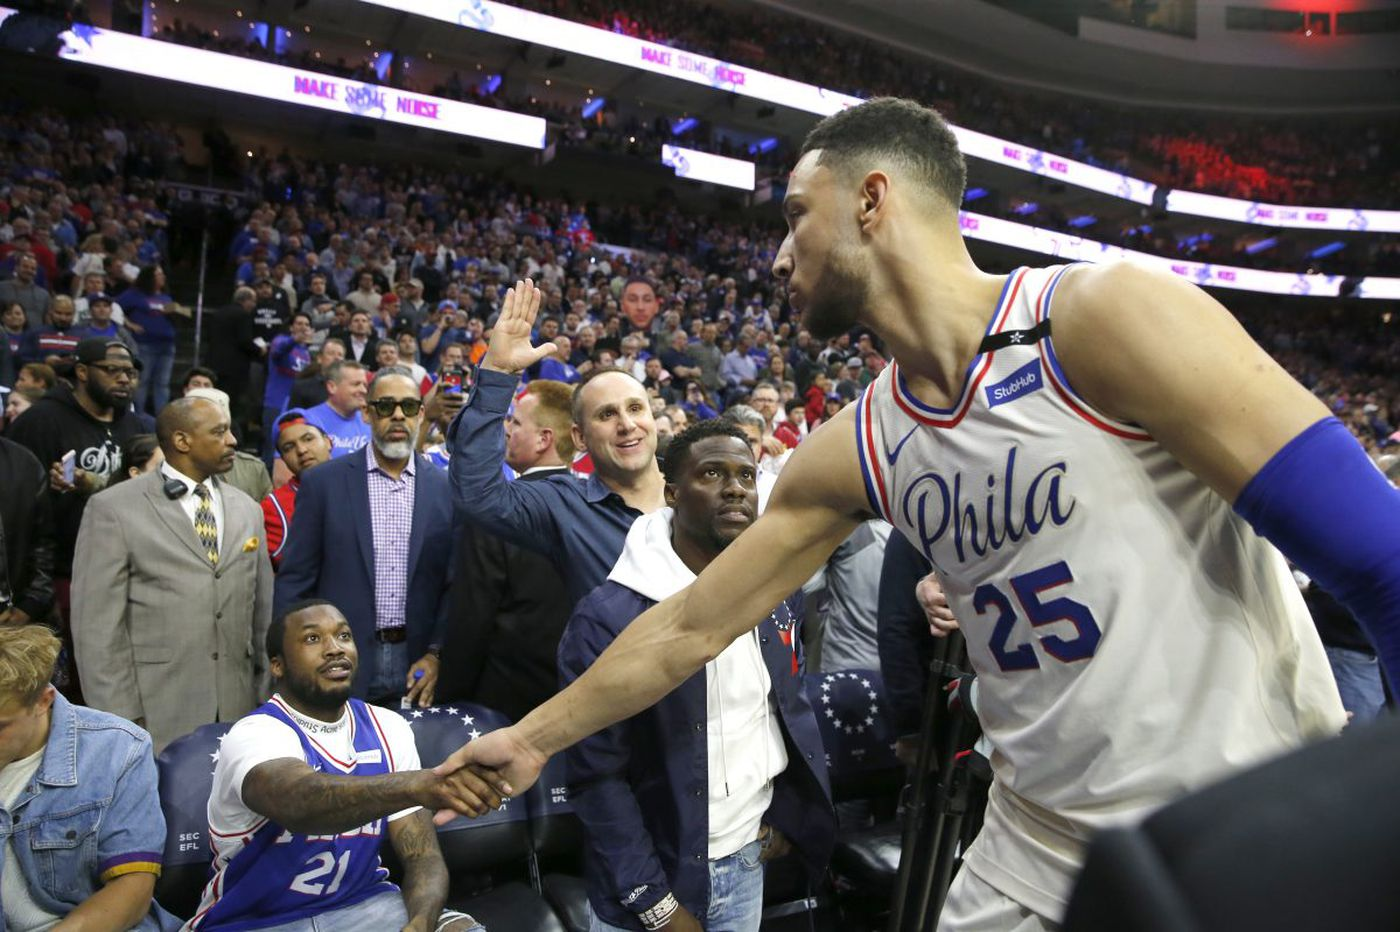 Ben Simmons keeps his cool in chippy Sixers-Heat Game 5 battle